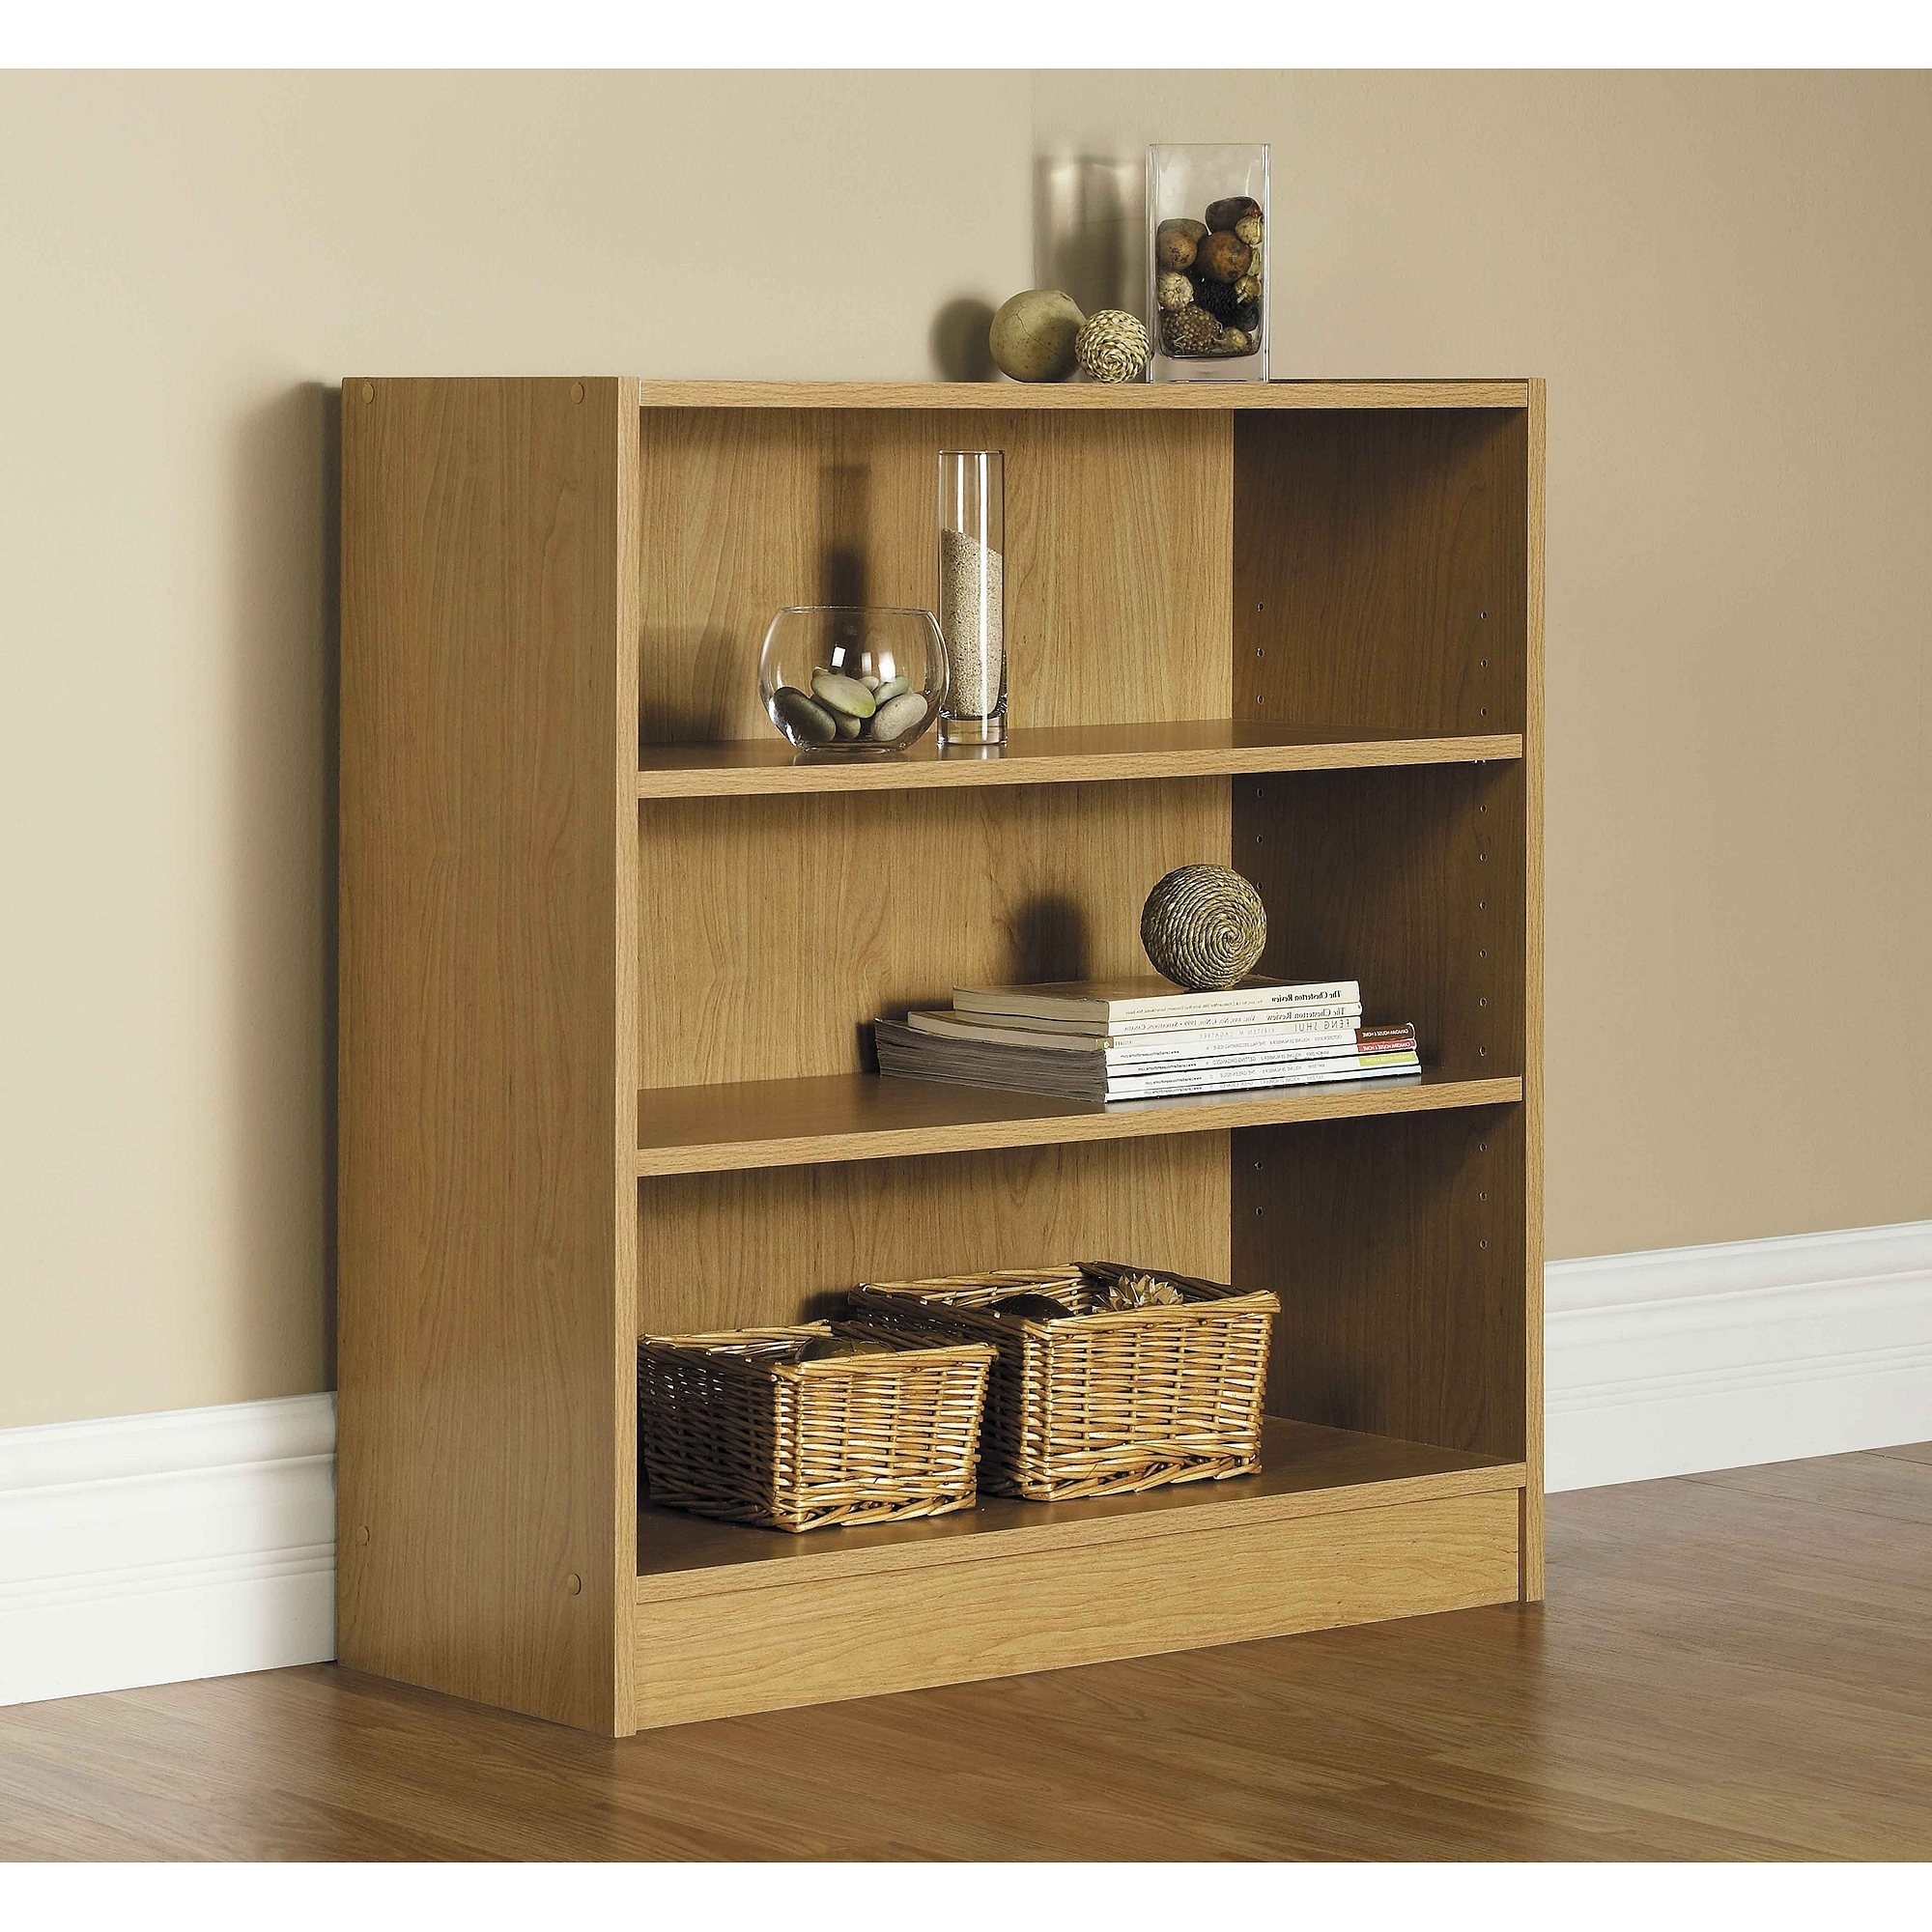 Mainstays Wide 3 Shelf Bookcase, Set Of 2, (mix And Match For Preferred 3 Shelf Bookcases Walmart (View 2 of 15)